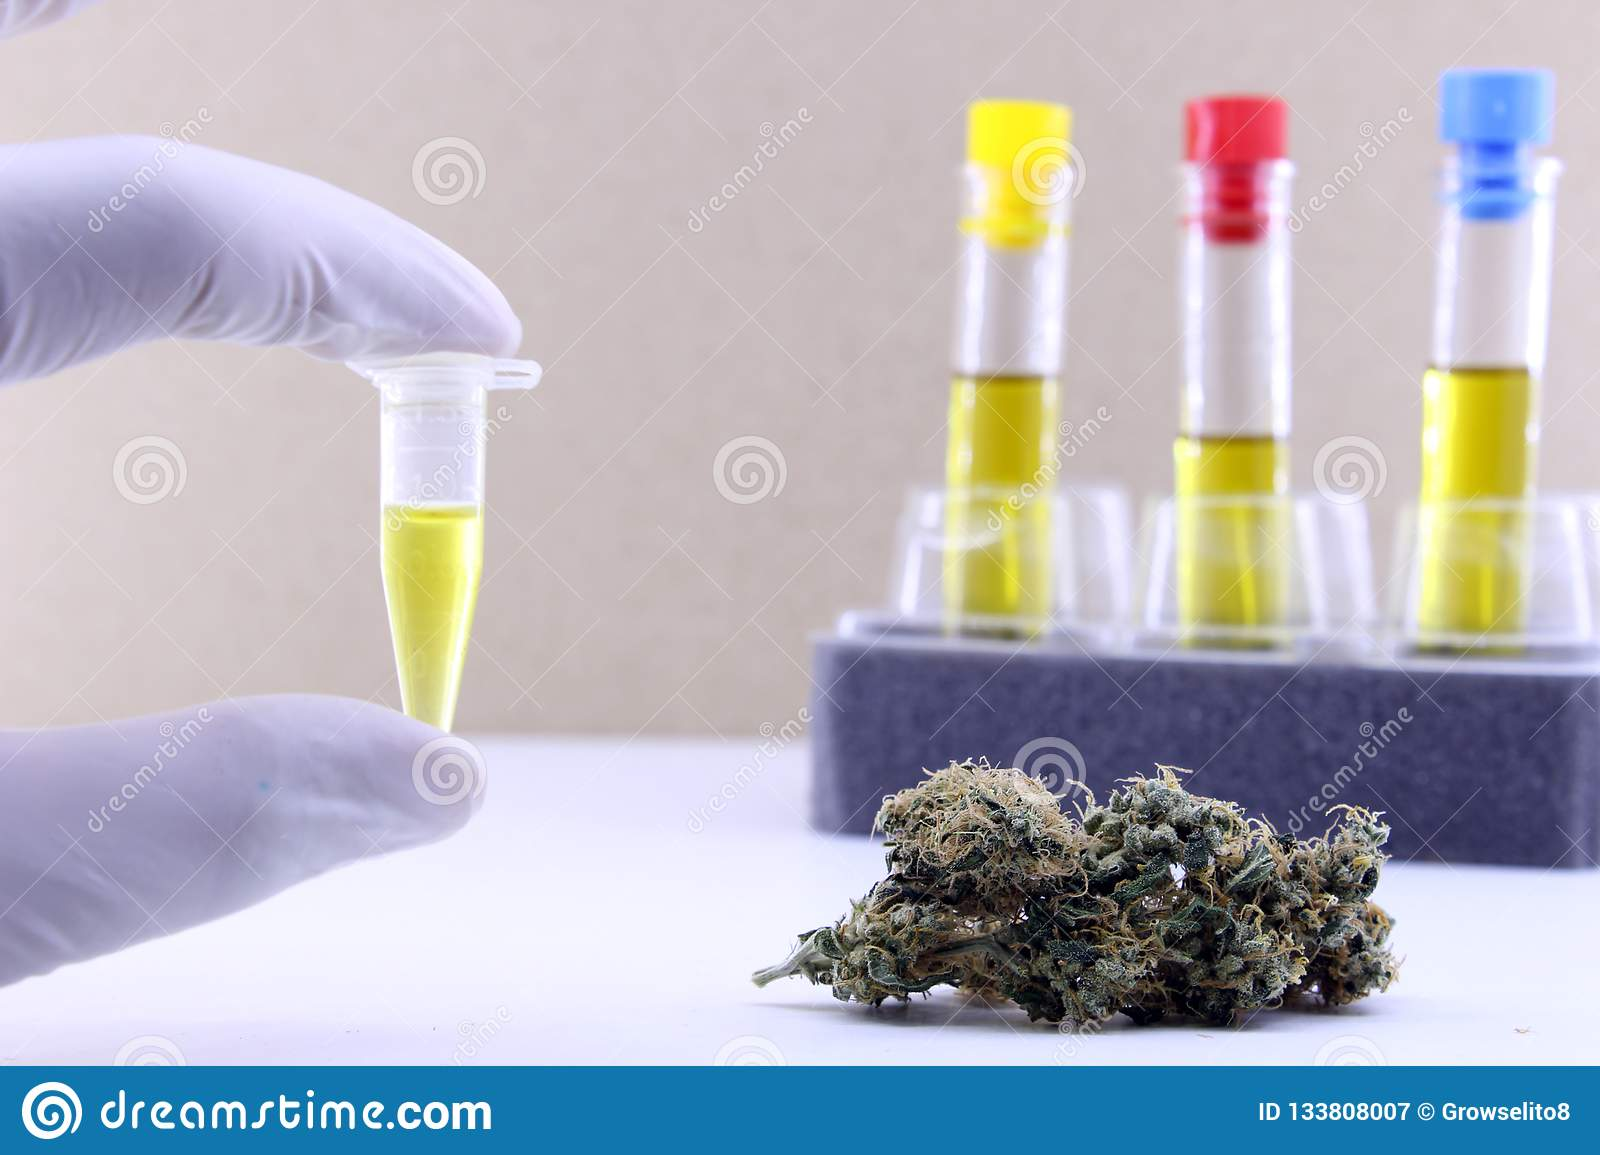 Extraction of cannabis oil